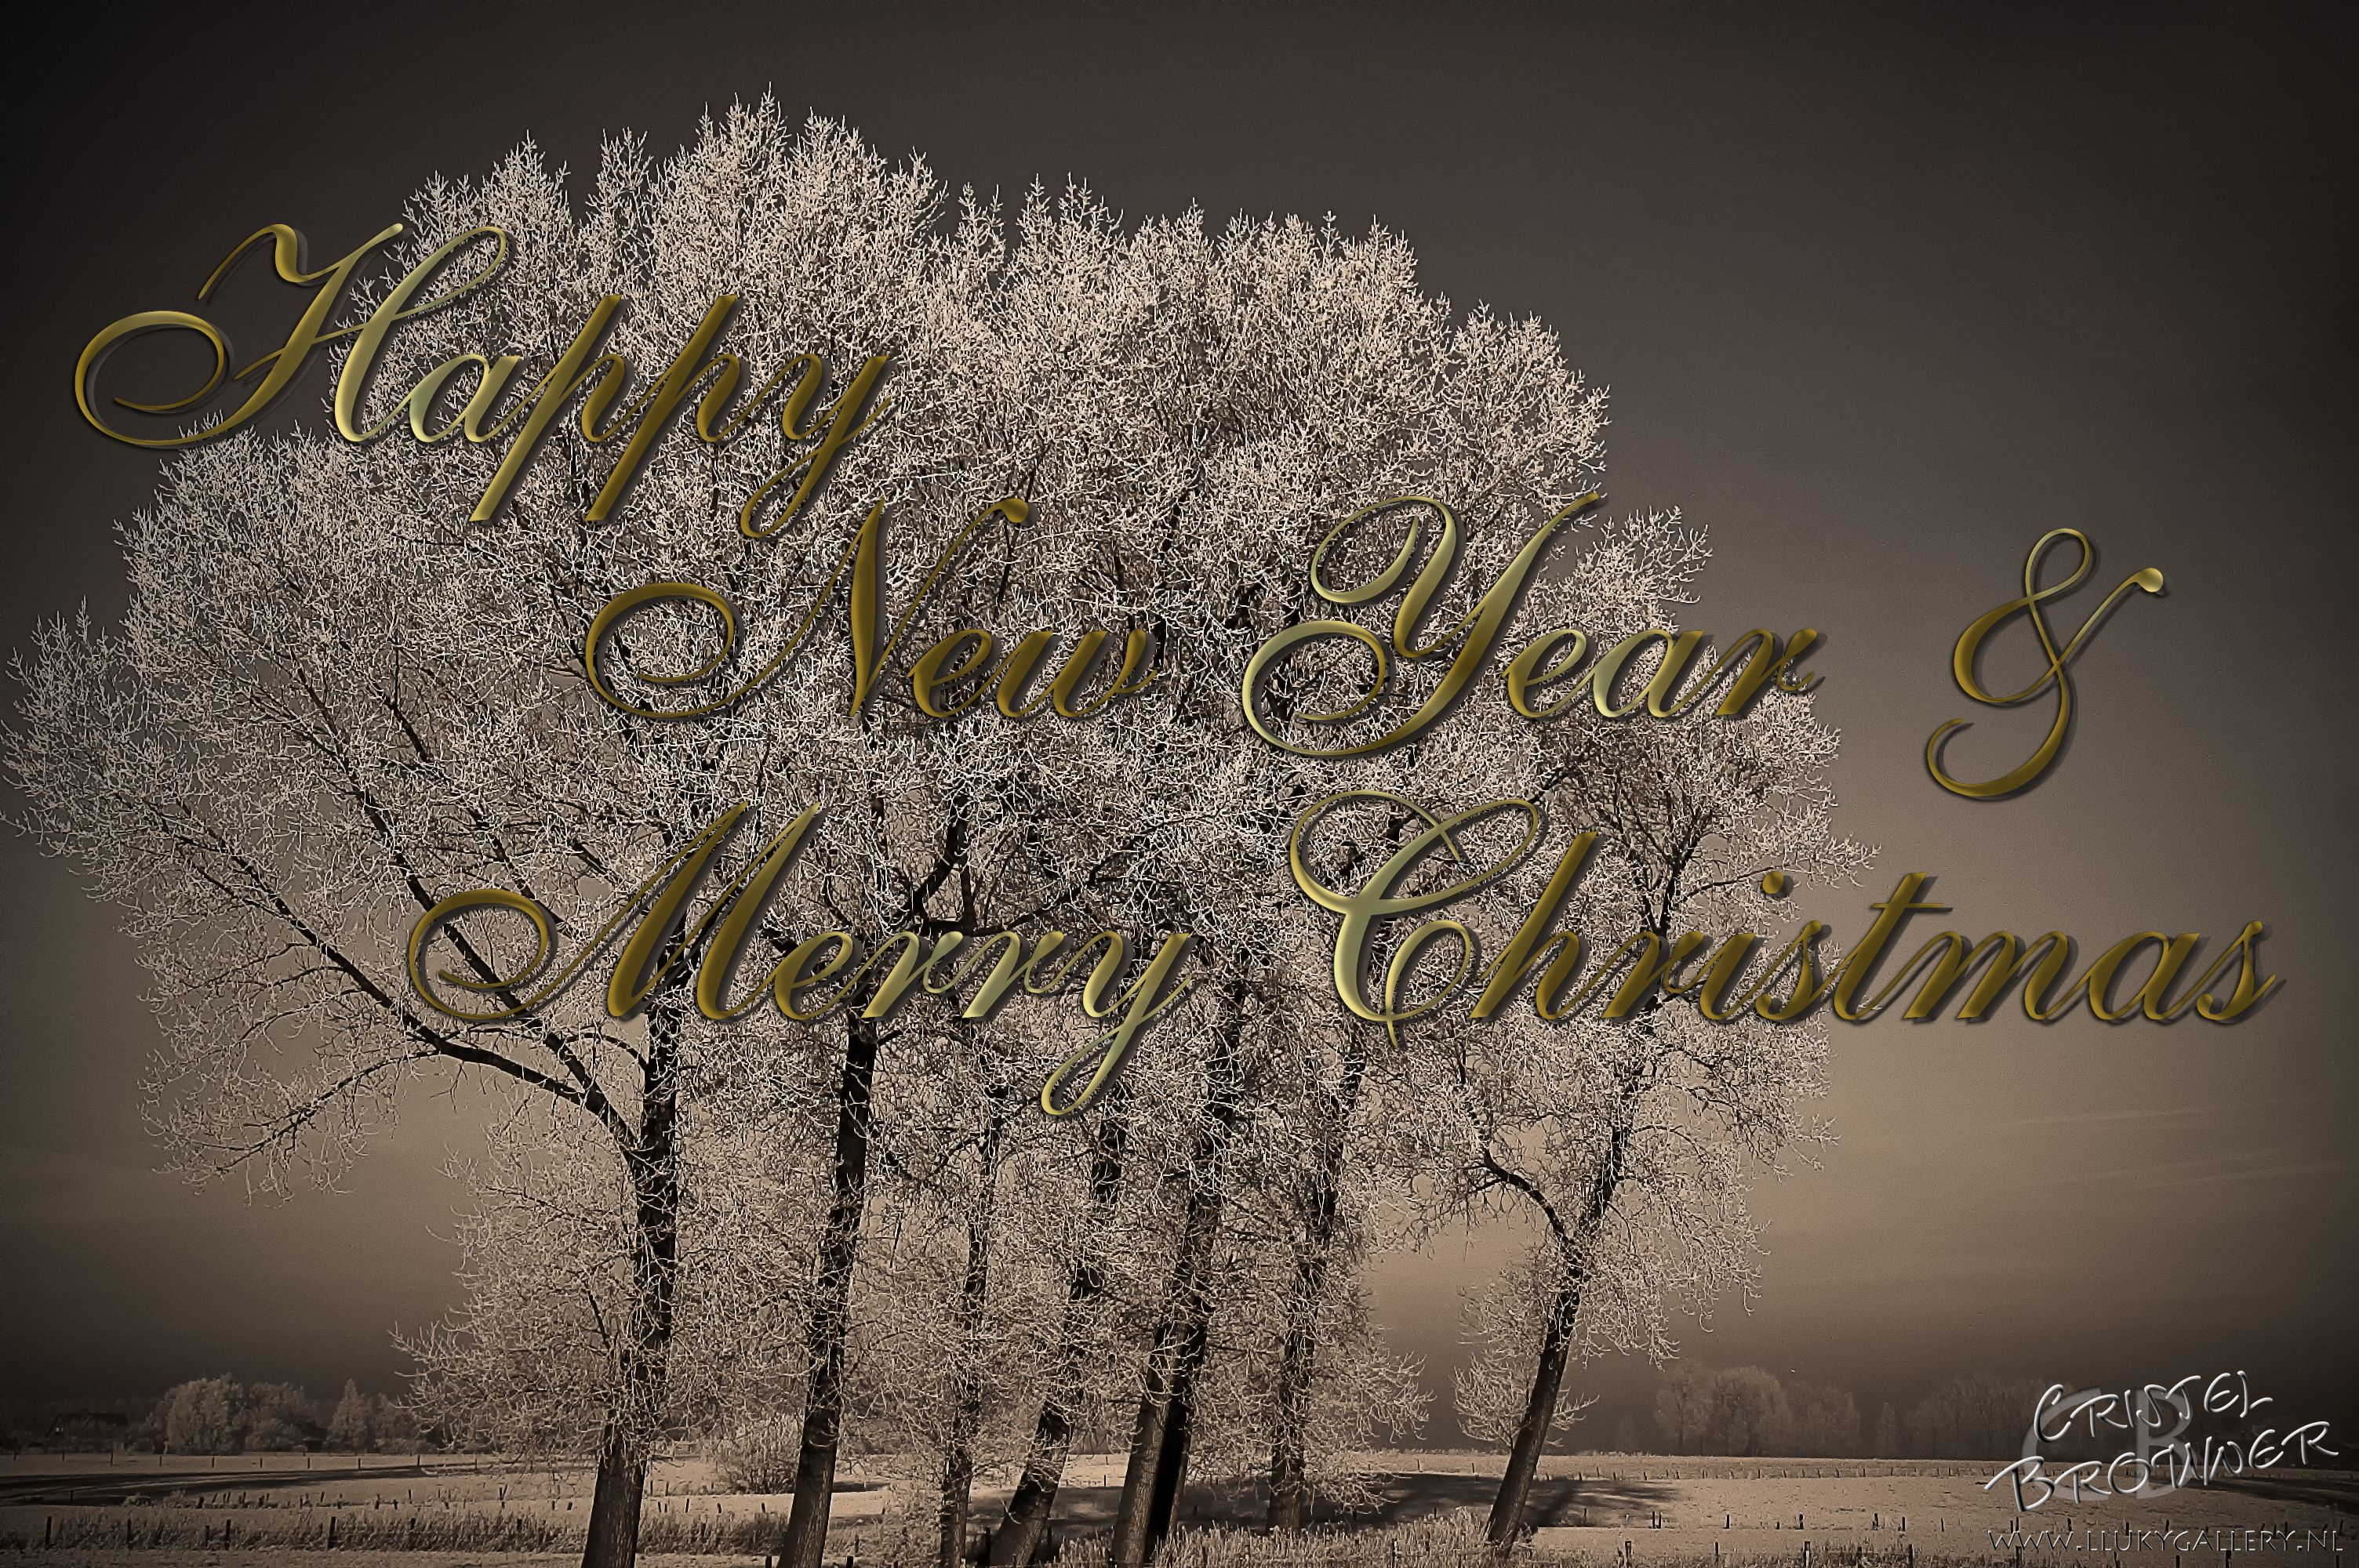 Wish you all a wonderful Christmas and may all your dreams come true in 2016!  xxx